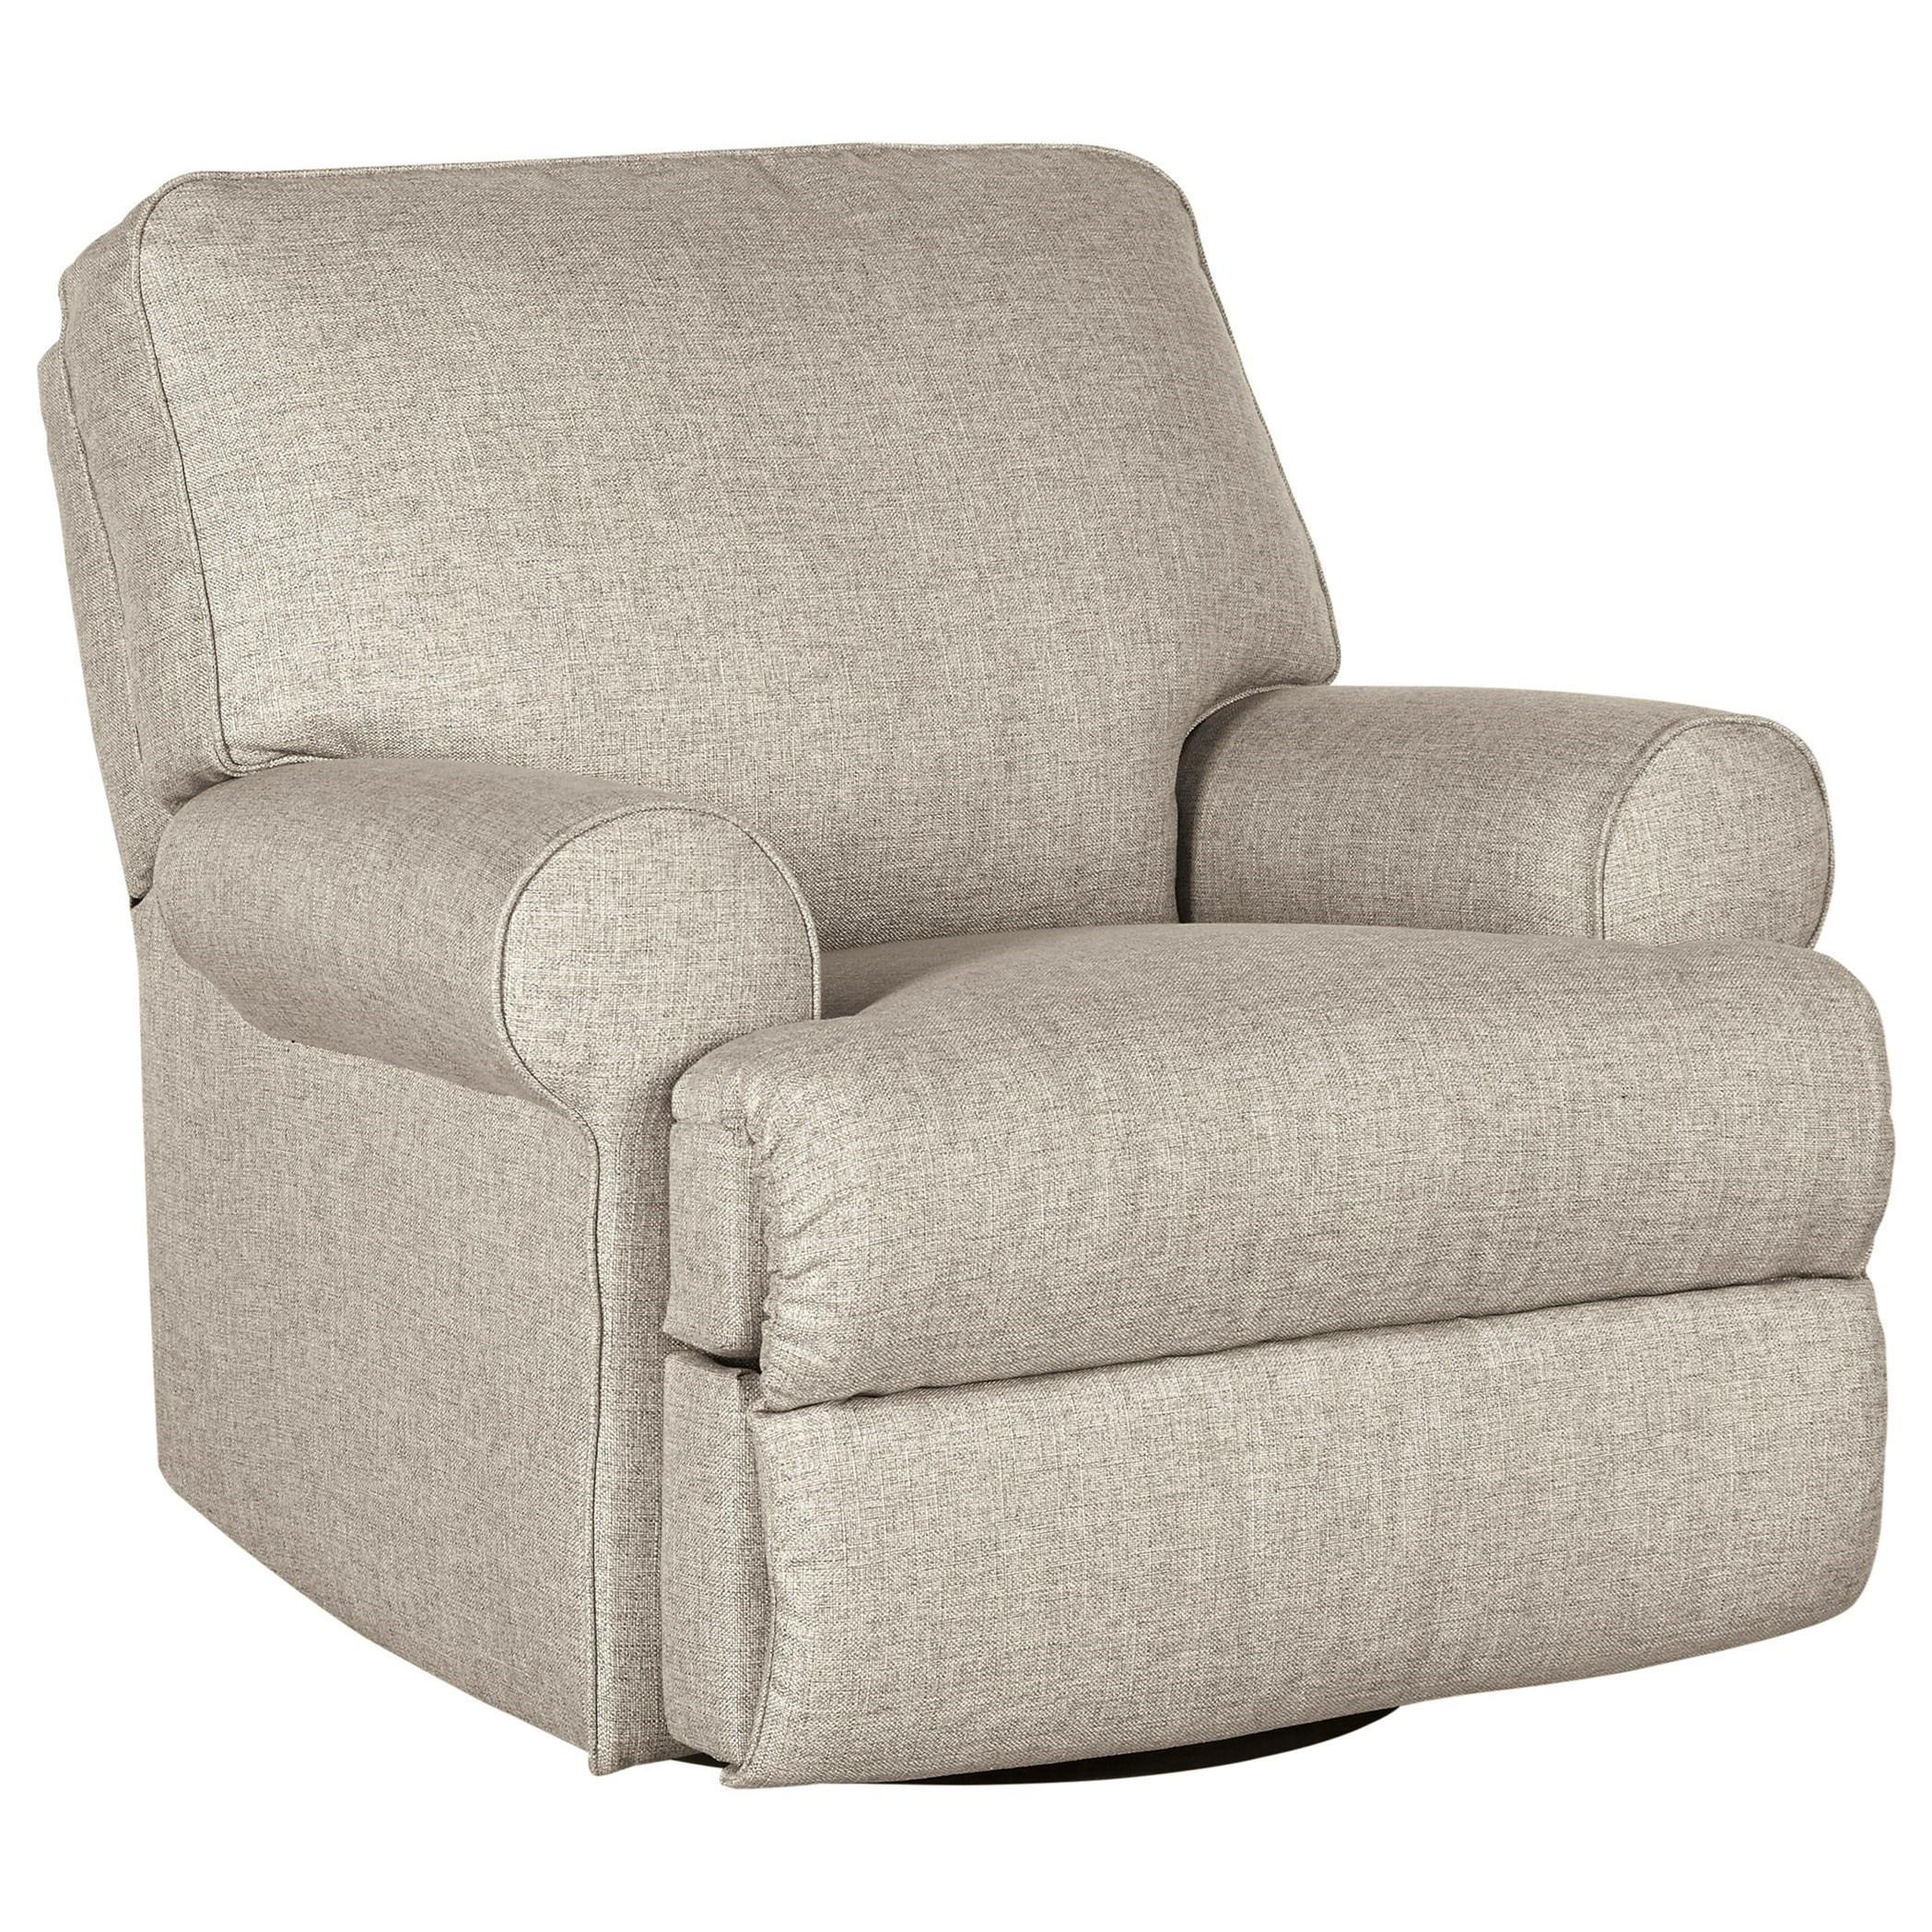 Ferncliff Swivel Glider Recliner by Signature Design by Ashley at Northeast Factory Direct